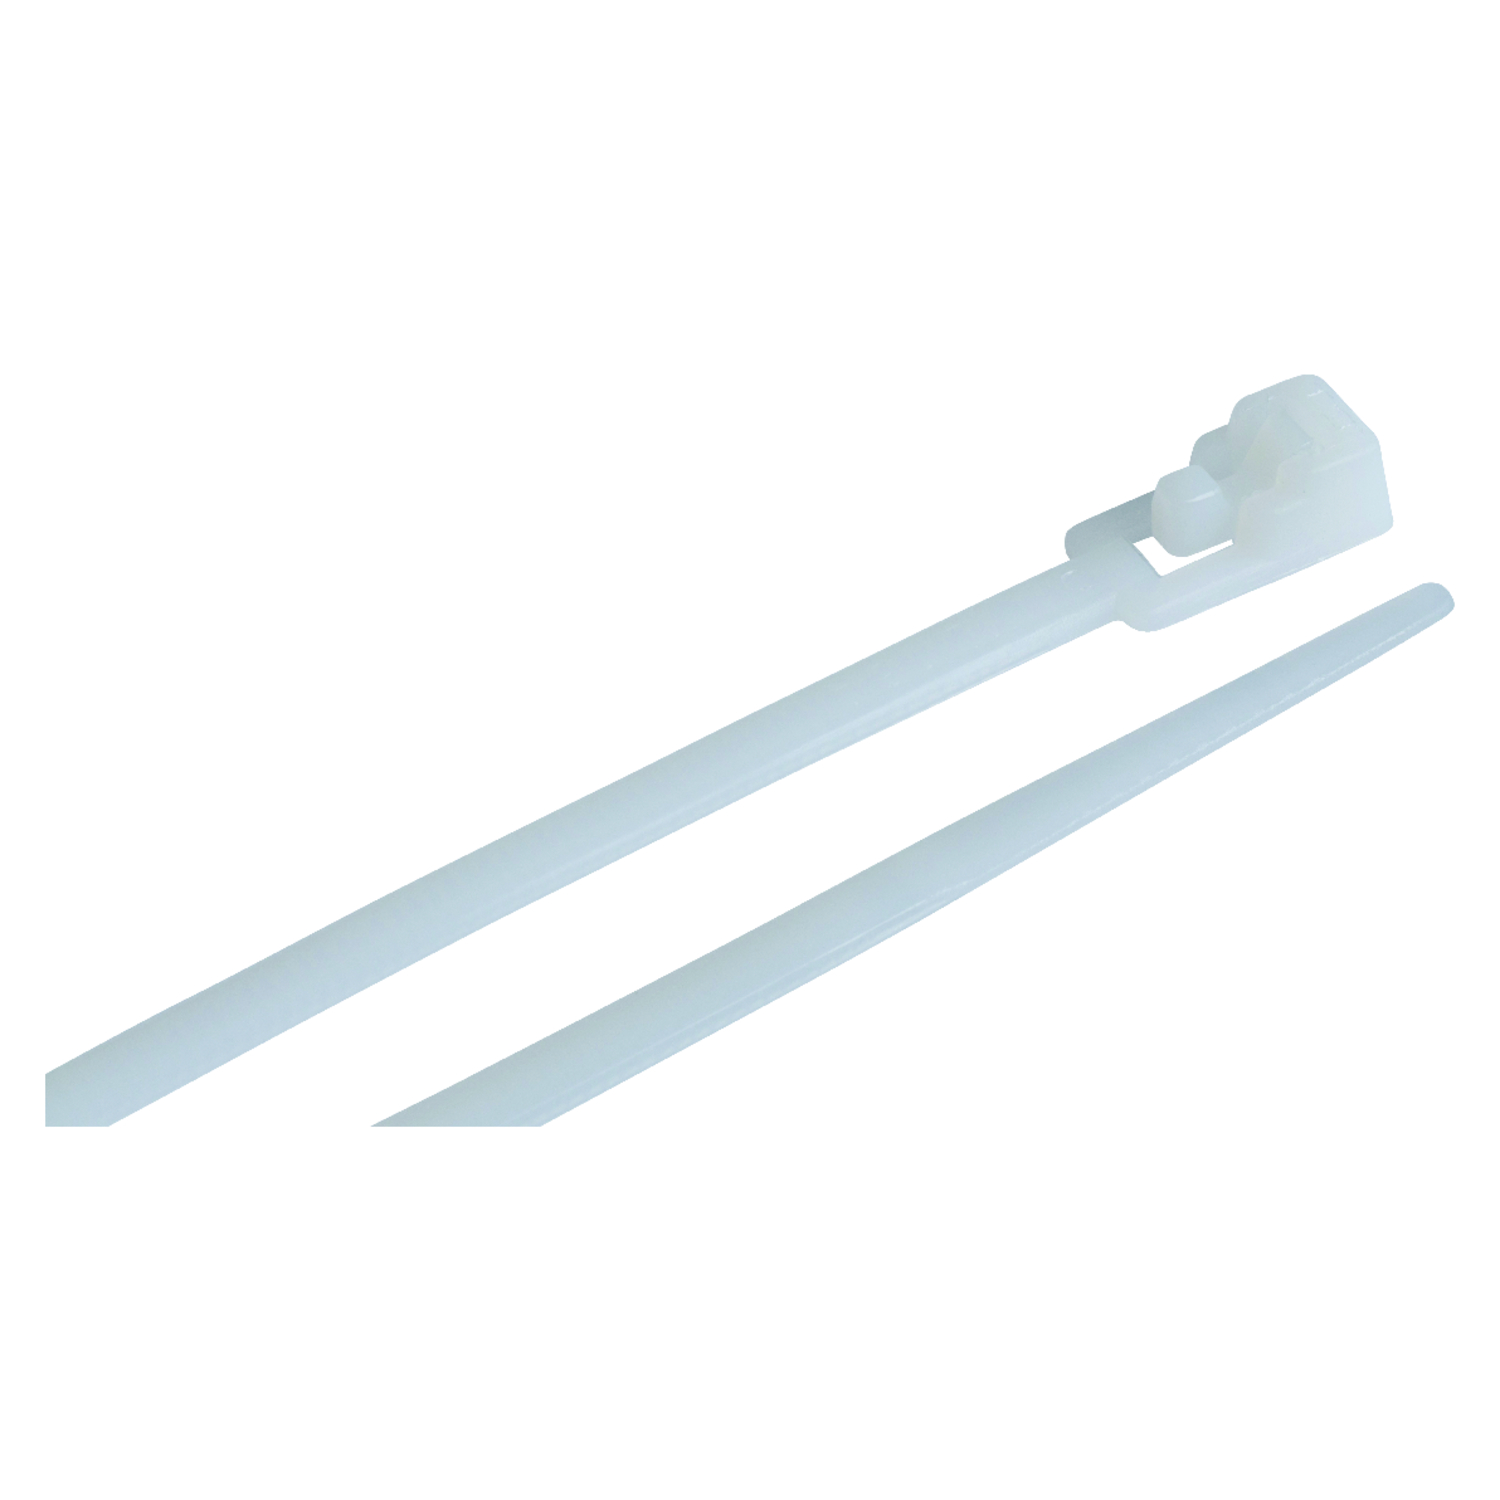 Gardner Bender Releasable 8 in. L White Cable Tie 25 pk - Ace Hardware